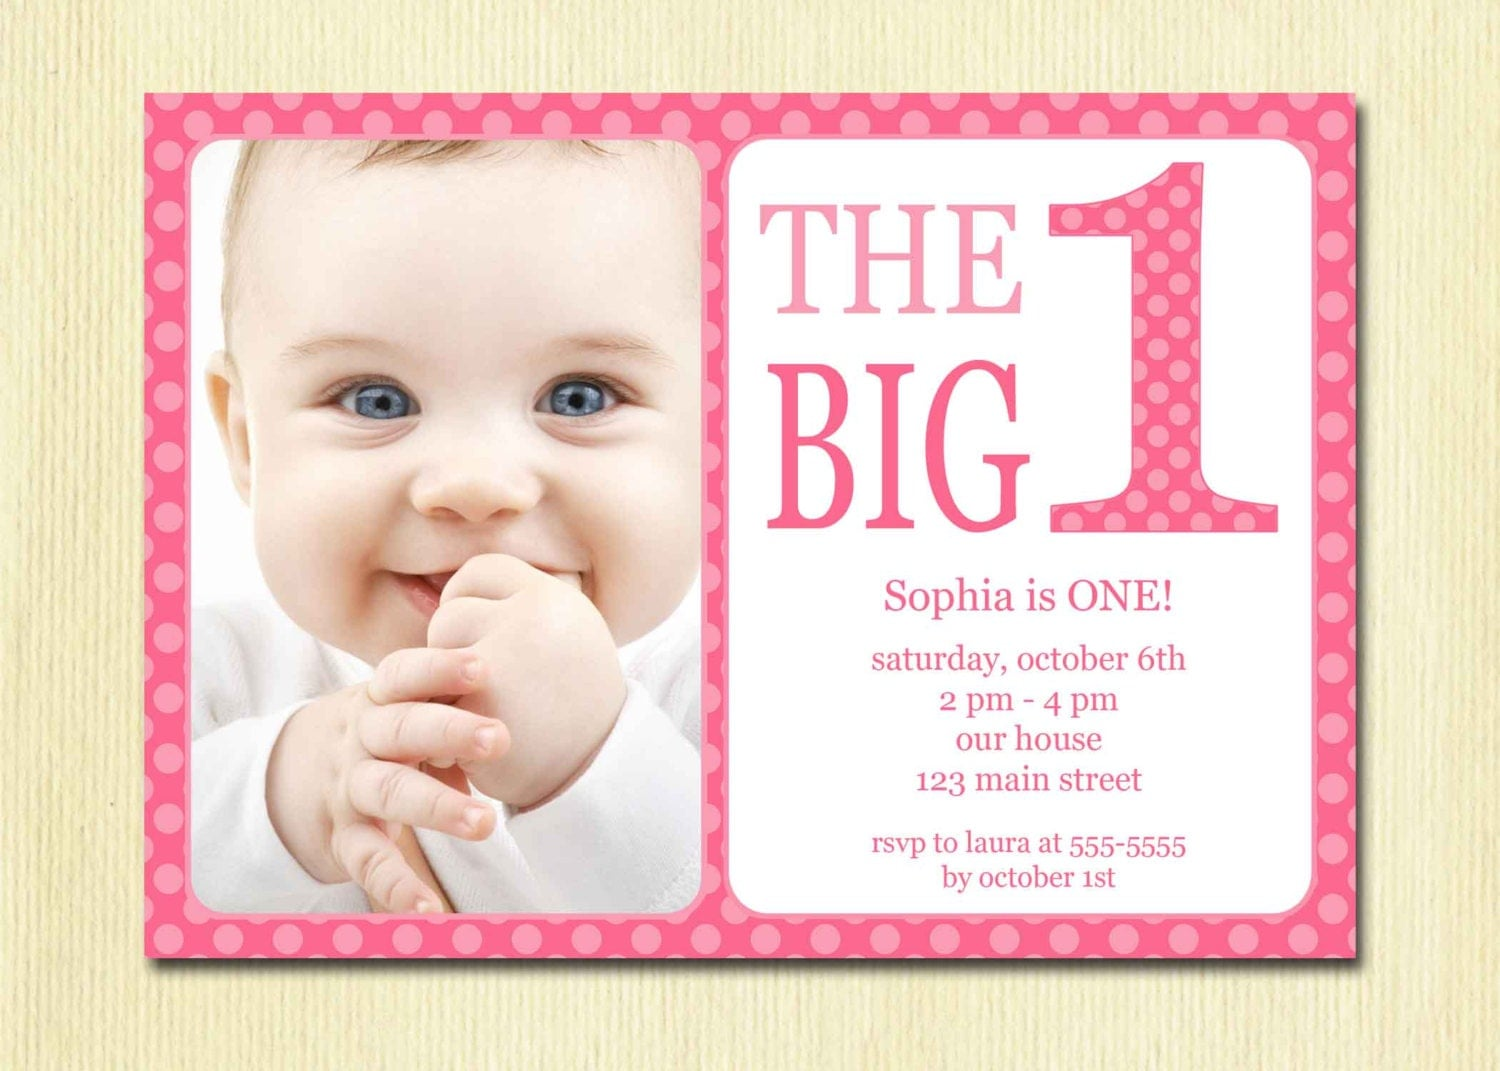 Baby birthday invitations dawaydabrowa baby birthday invitations stopboris Image collections